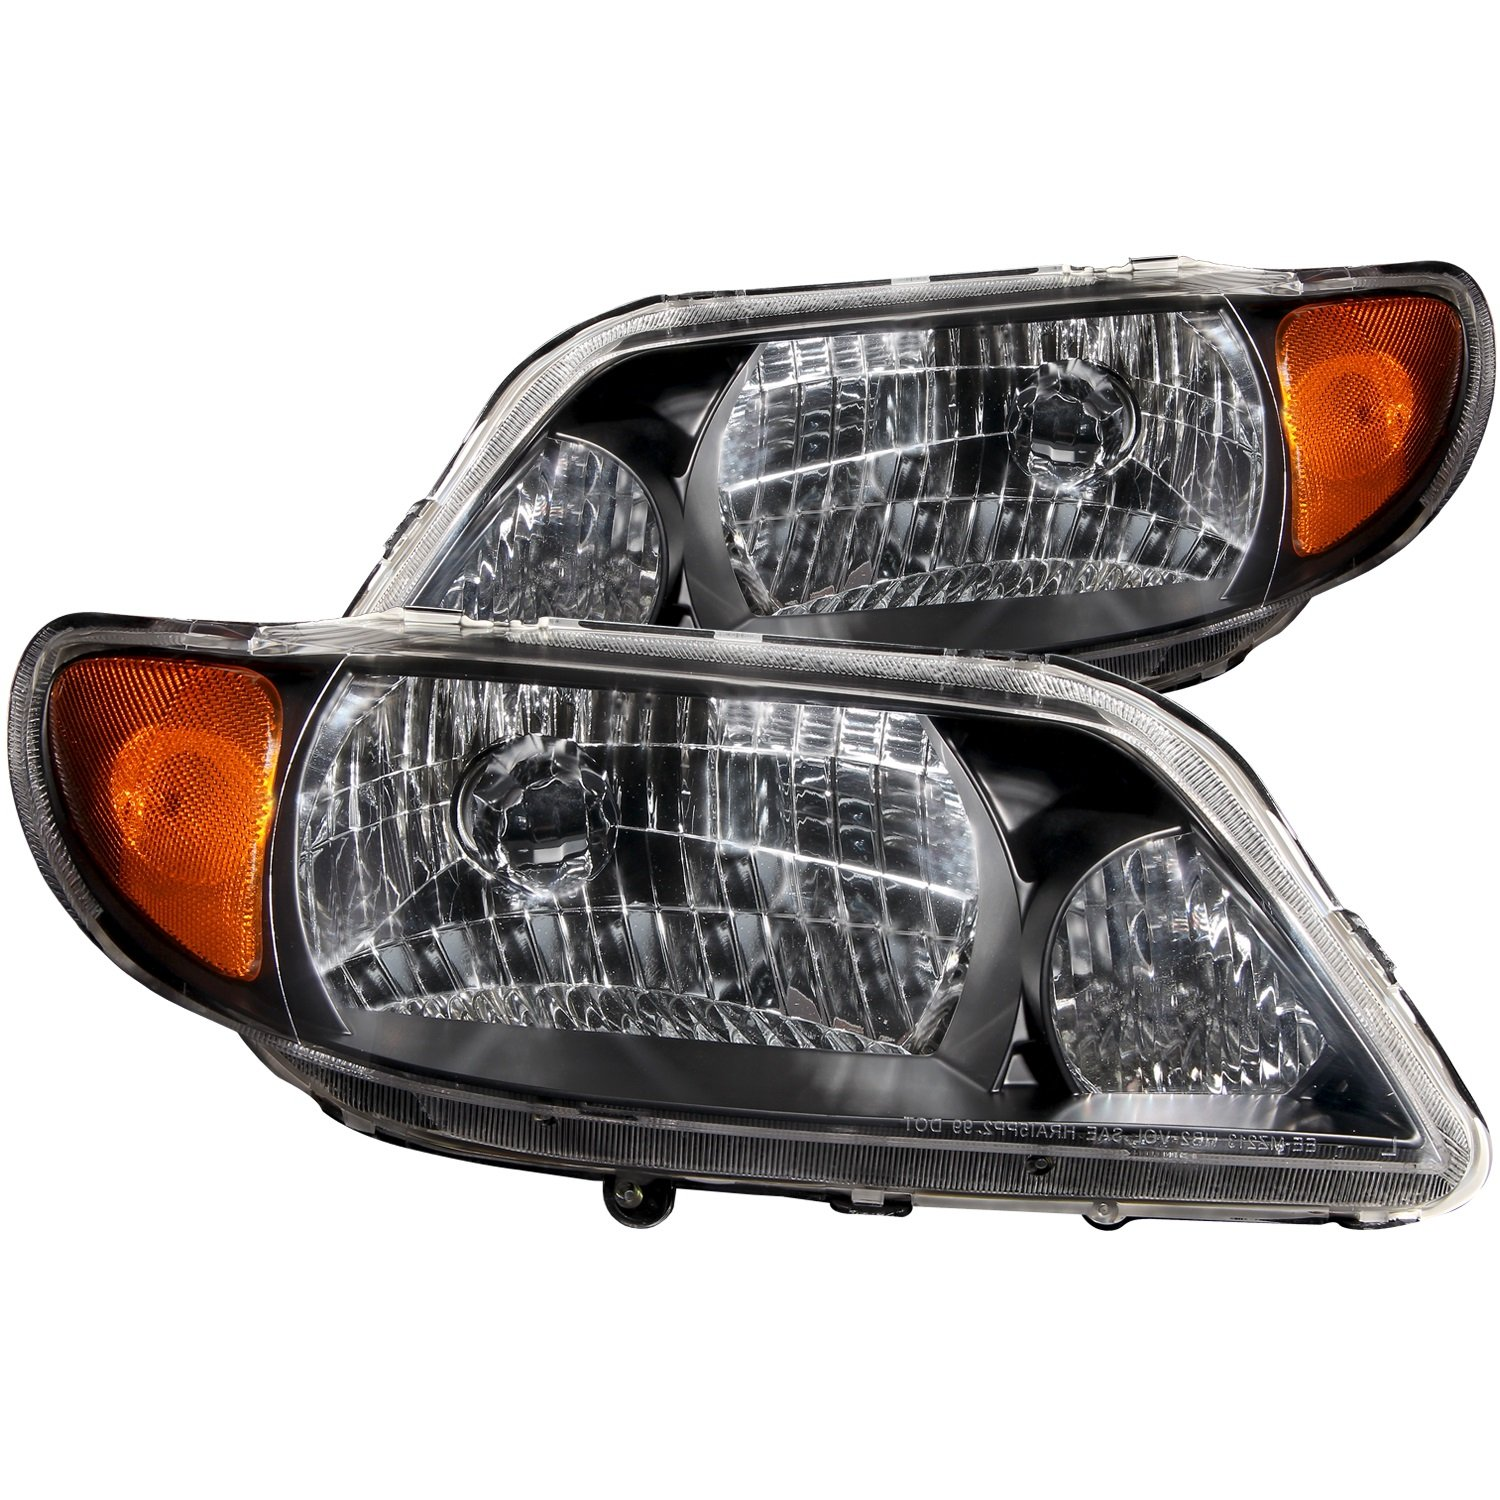 Anzo USA 121107 Mazda Protege Crystal Black Headlight Assembly Sold in Pairs